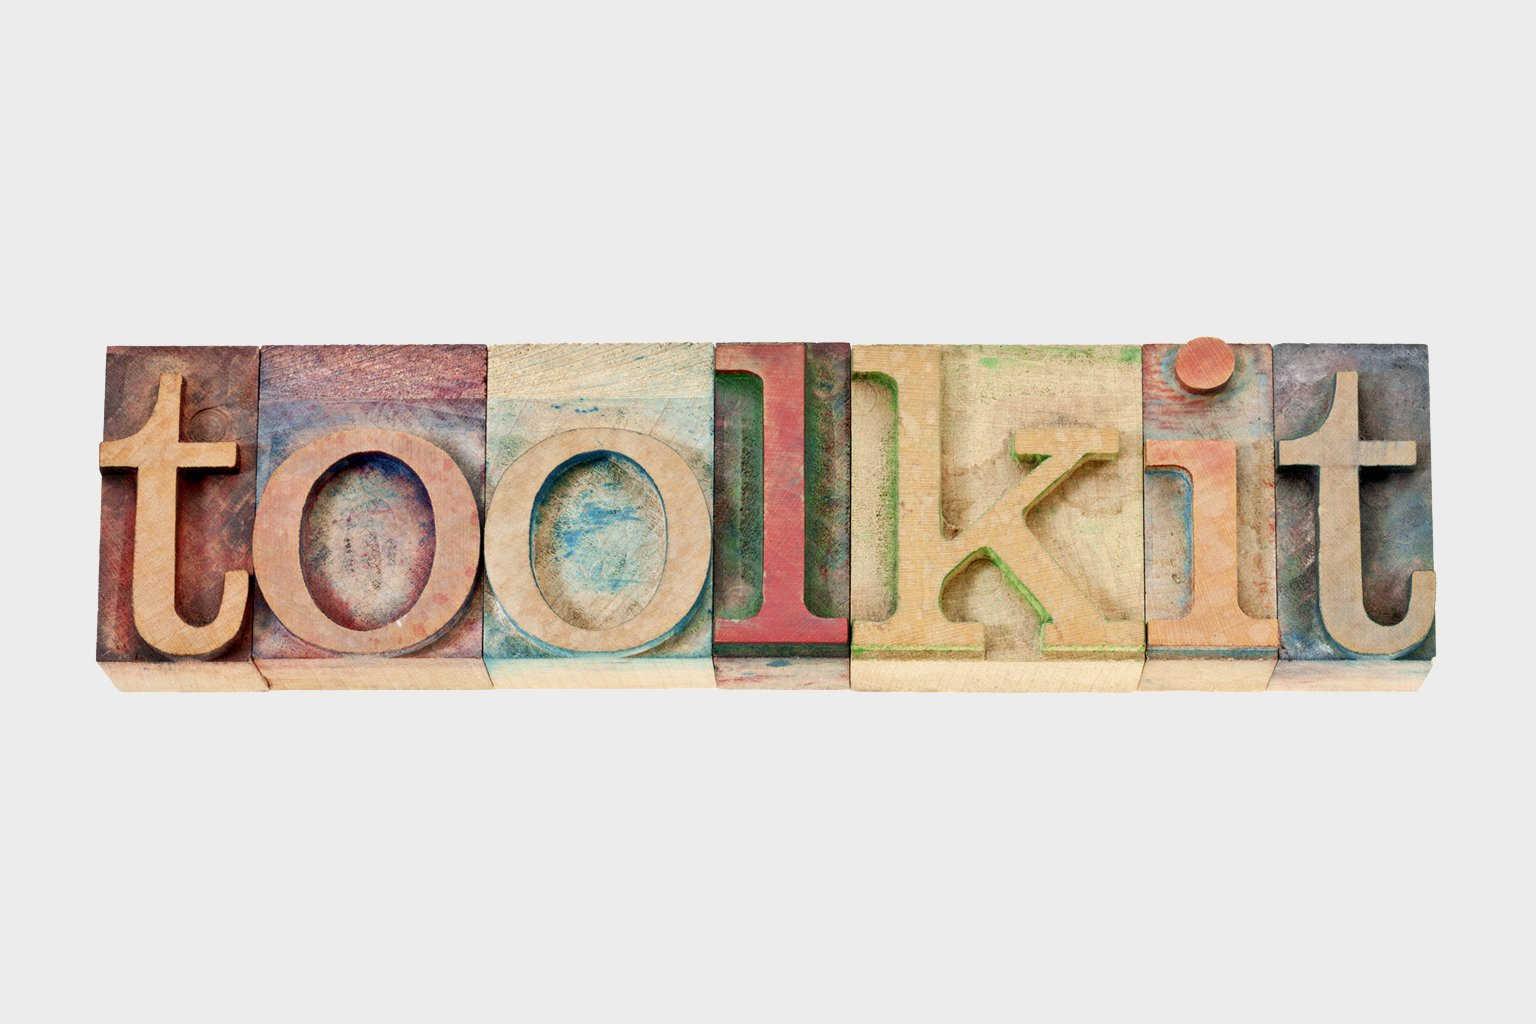 The word toolkit written with stamp letters